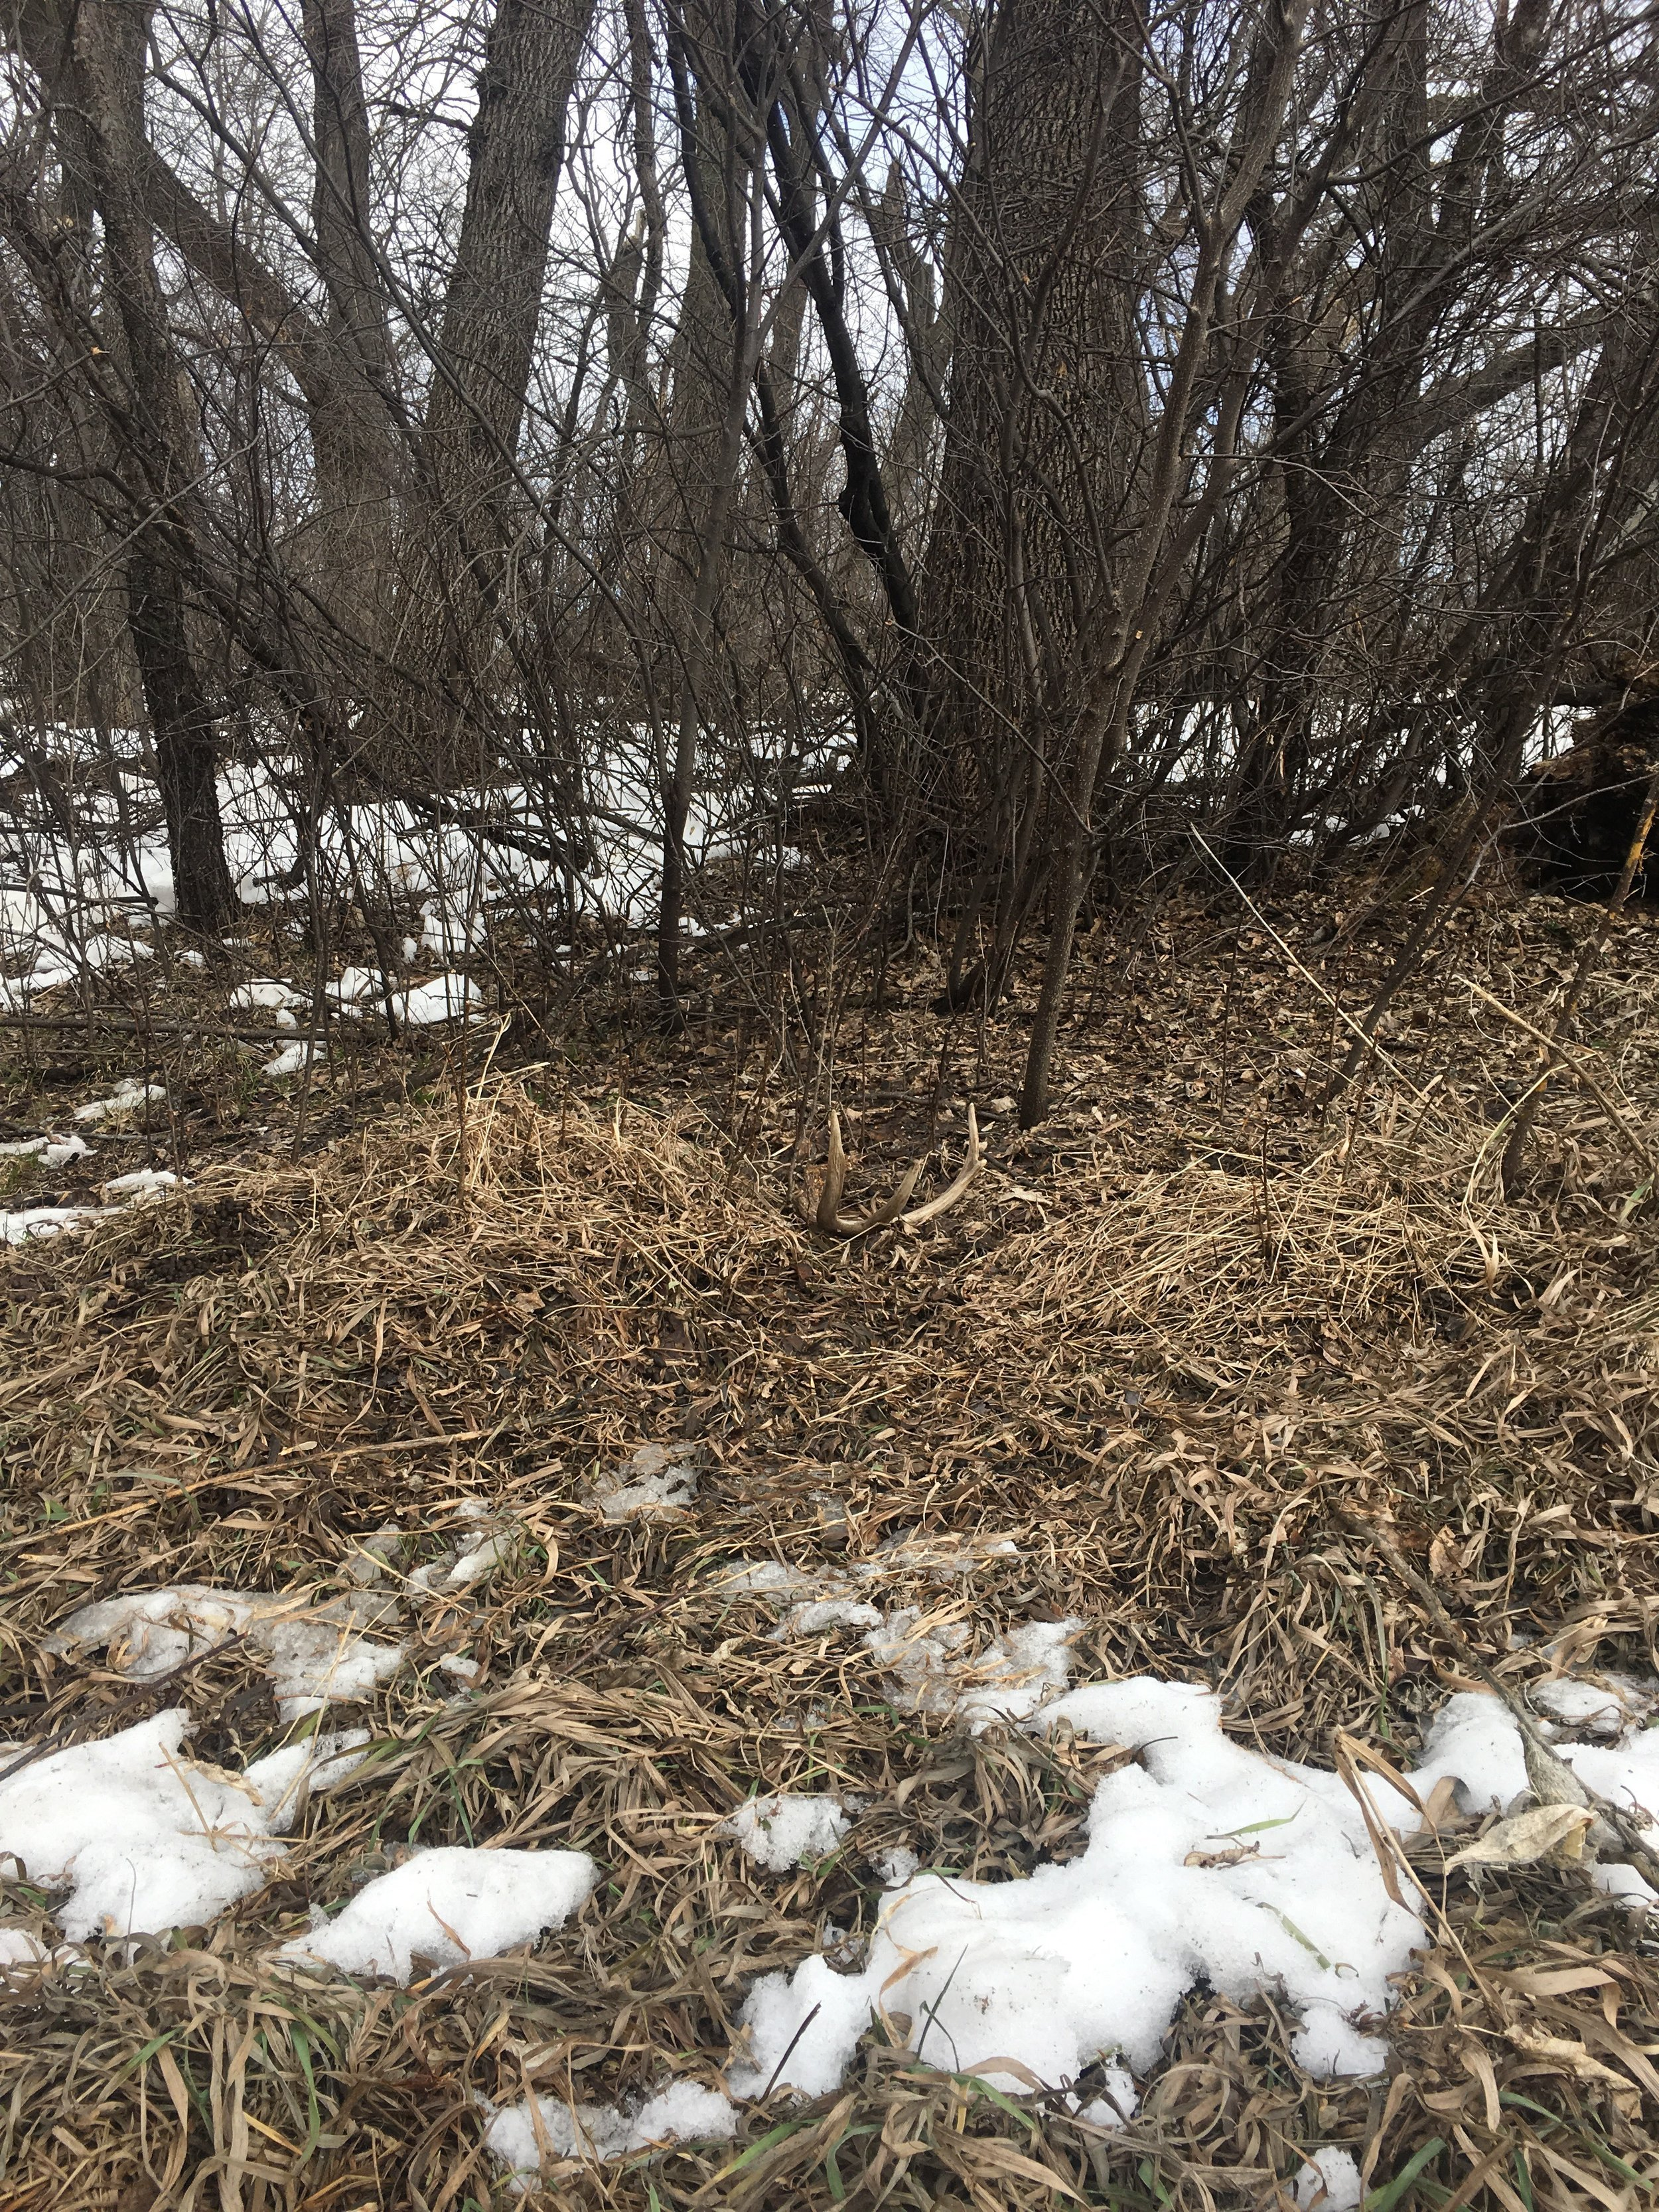 Sheds can sometimes be hiding in plain sight like this one as it blends in with it's surroundings. Want to avoid making some mistakes while out shed hunting? Read this -->  5 Mistakes You've Been Making Shed Hunting This Year